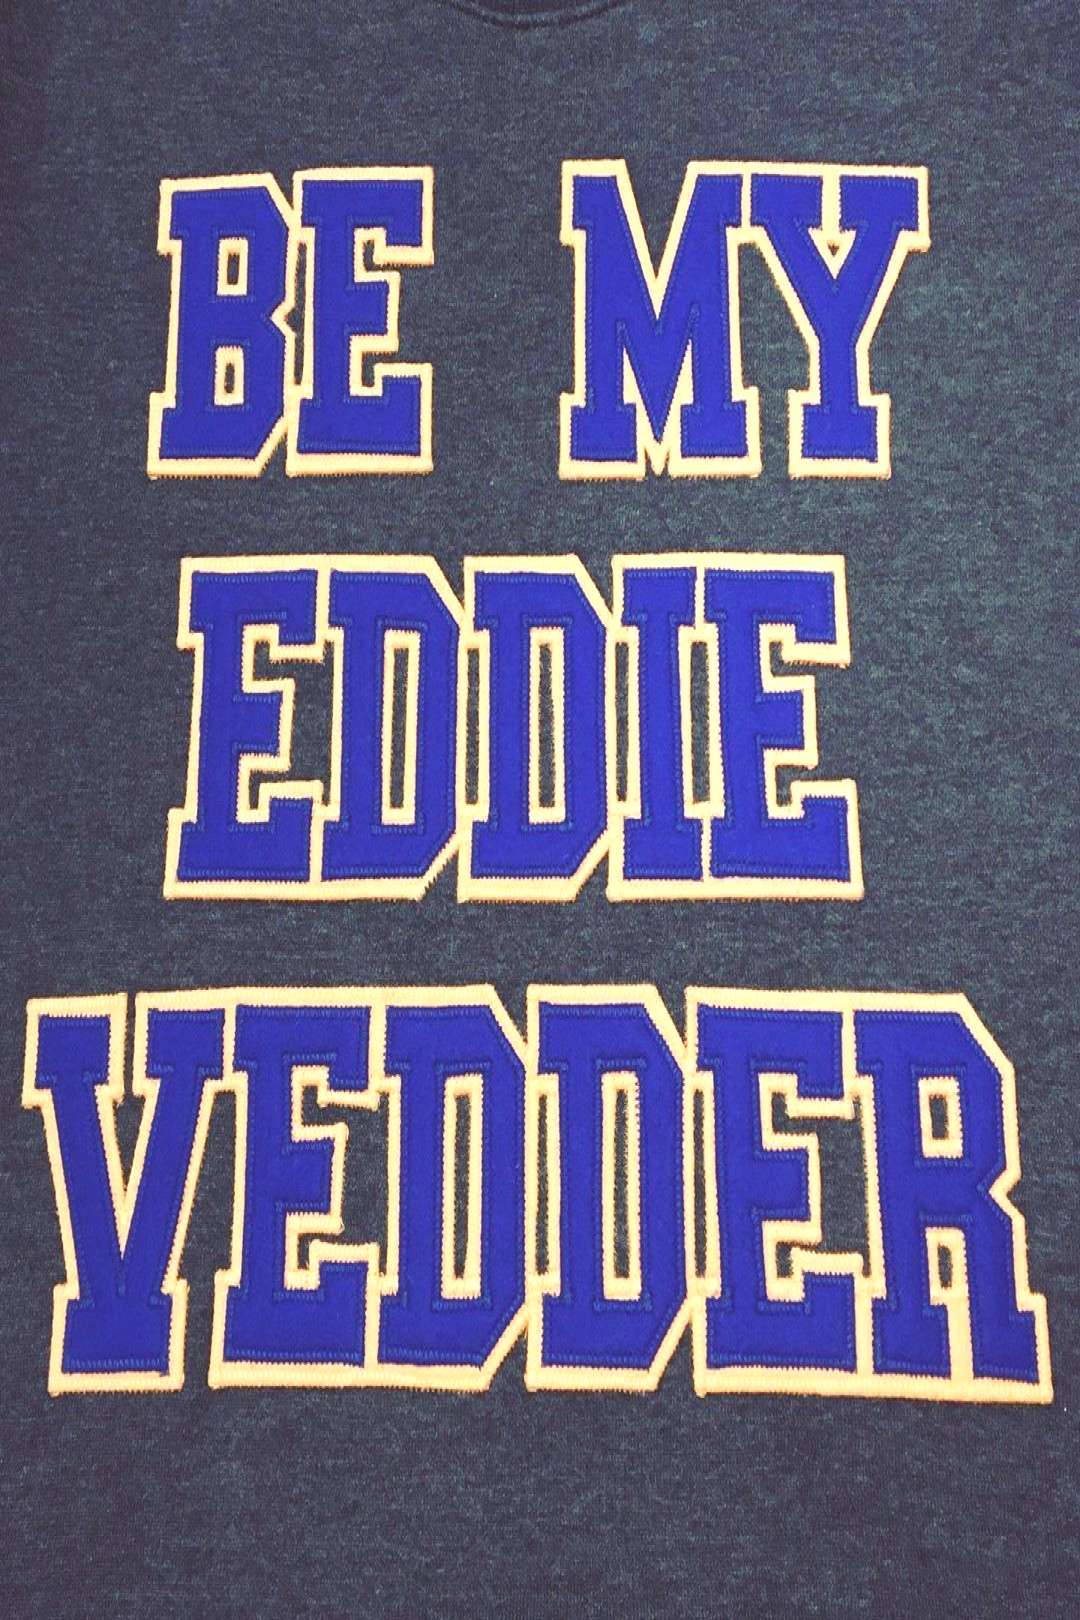 Image may contain: text that says 'BE MY EDDIE VEDDER'